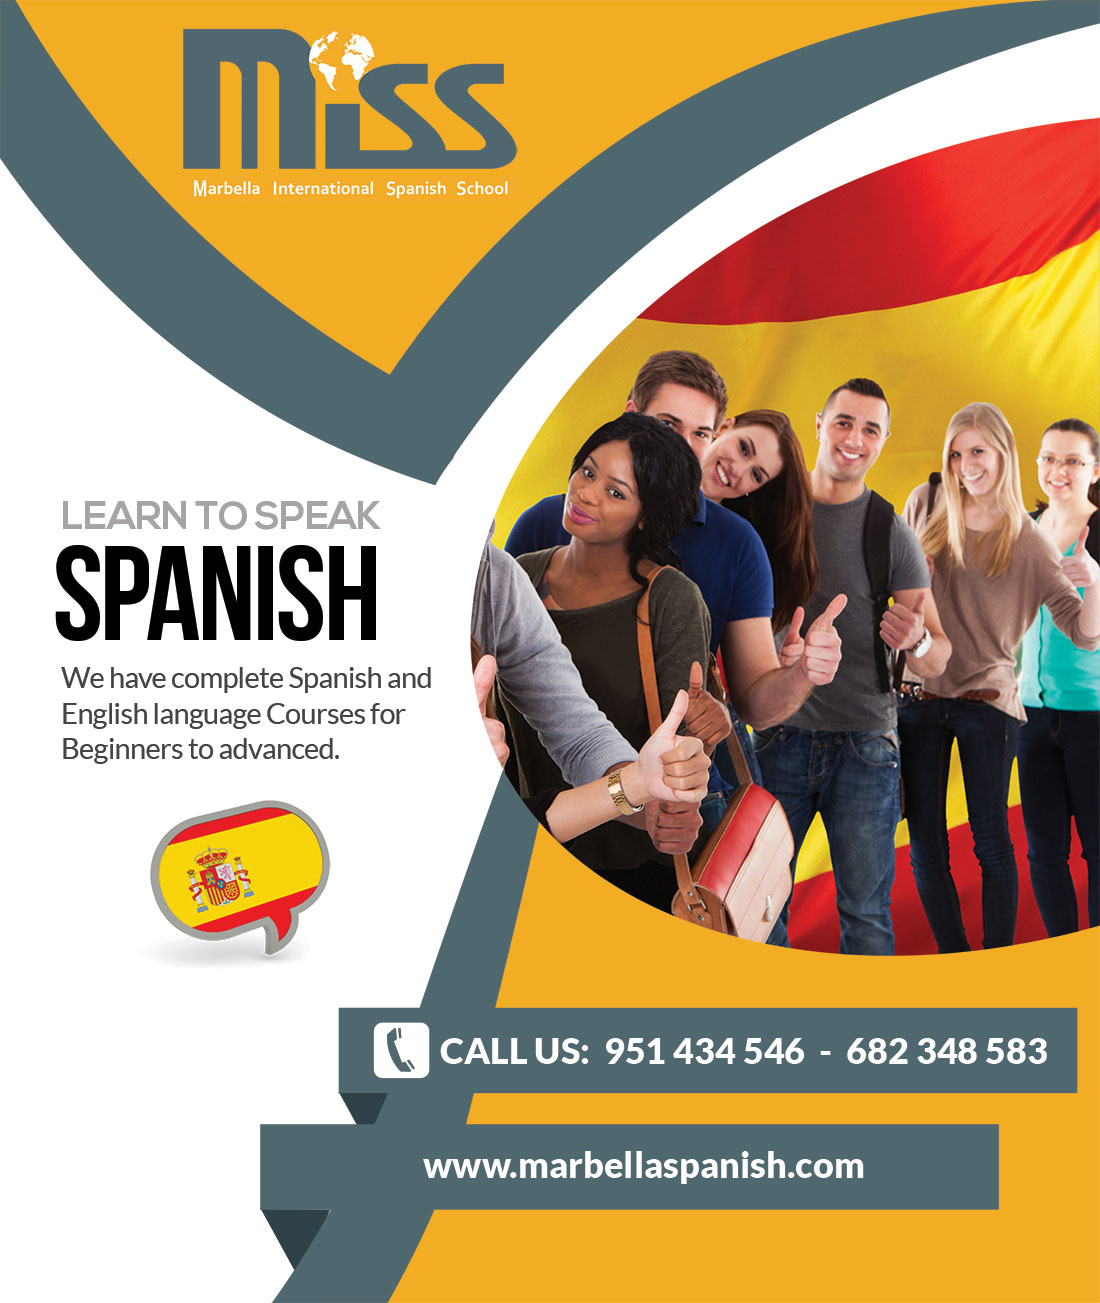 learn-to-speak-spanish-in-marbella-international-spanish-school